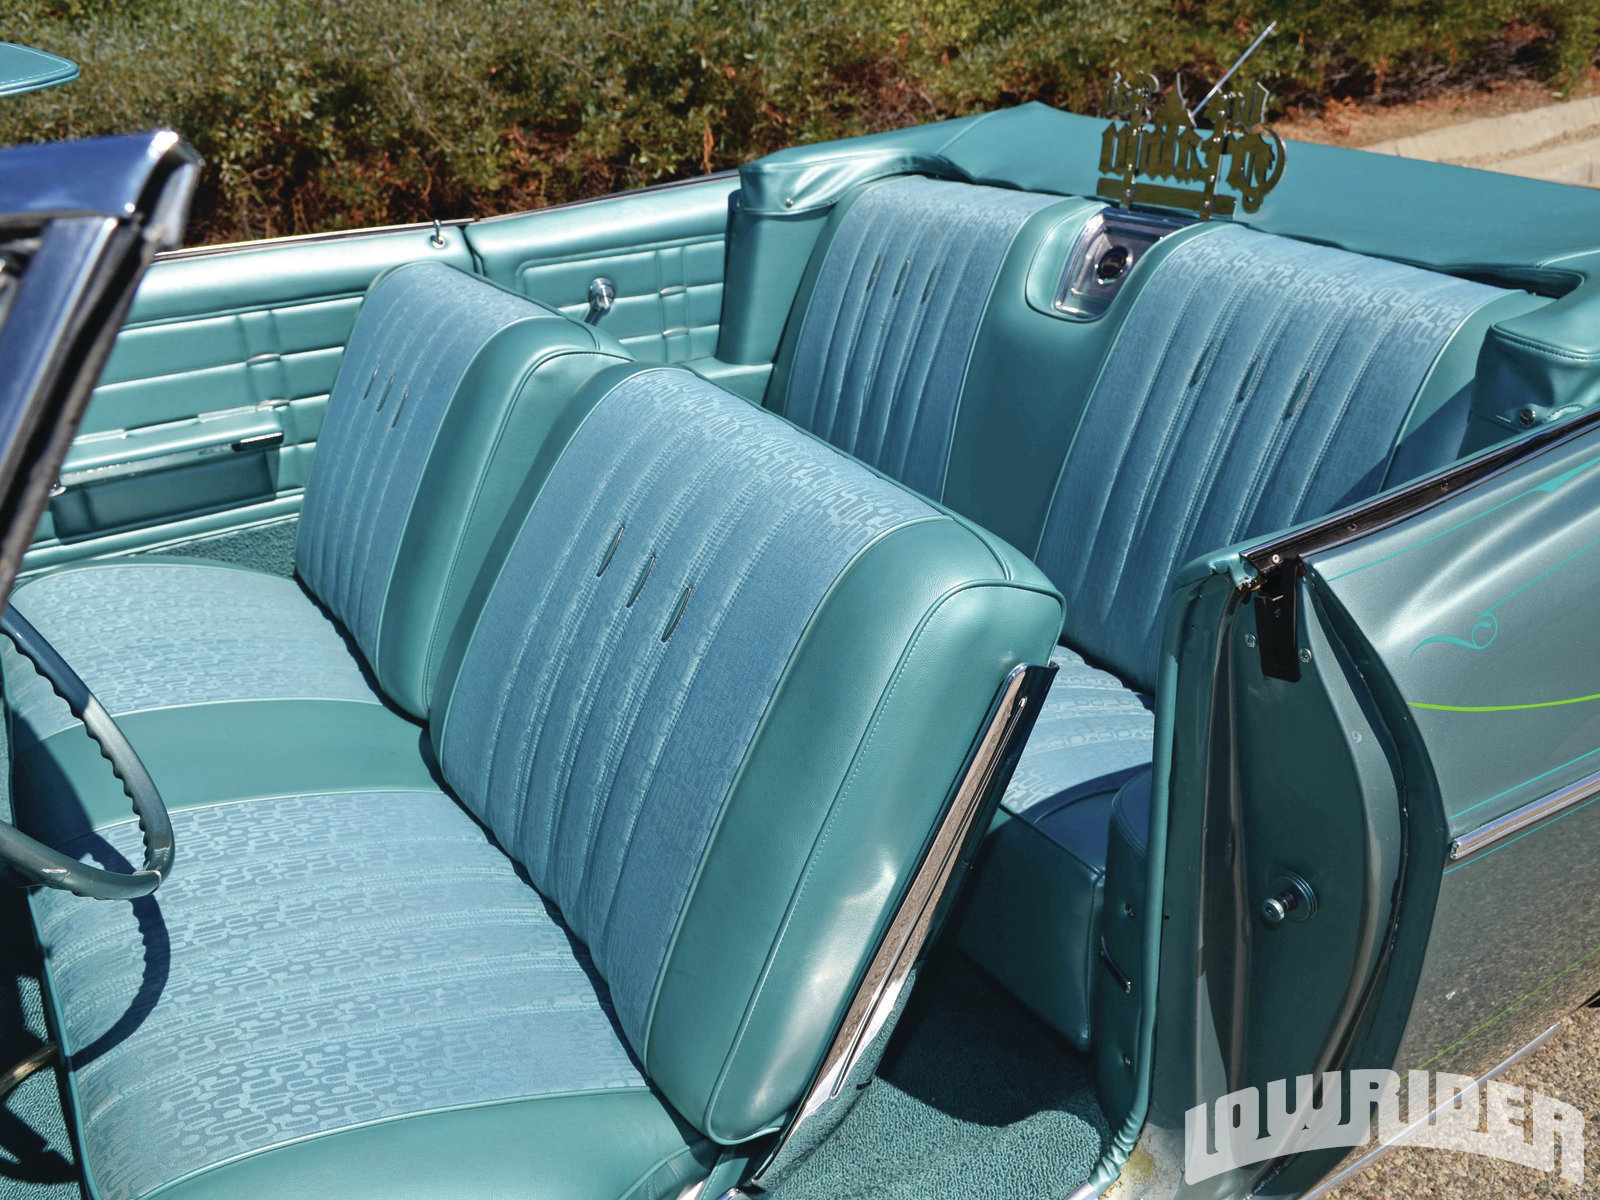 1212 Lrmp 07 O 1966 Chevrolet Impala Og Interior Lowrider Bel Air Conv About This Editor